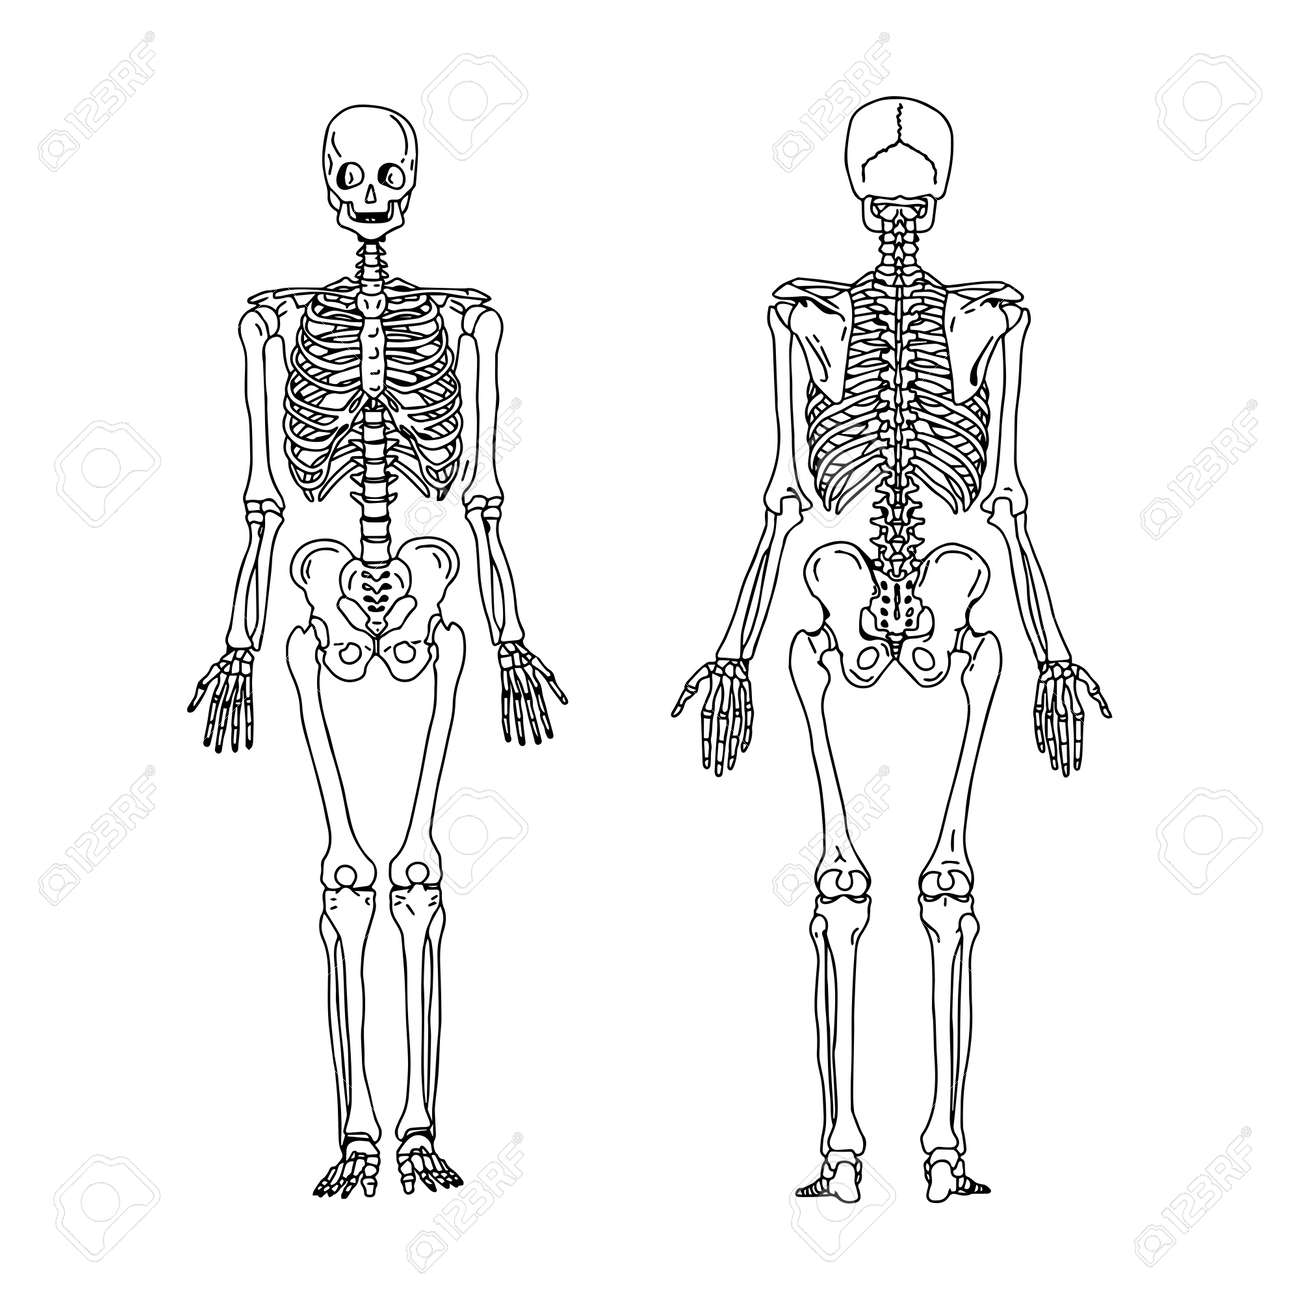 Illustration Vector Hand Draw Doodles Of Human Skeleton From